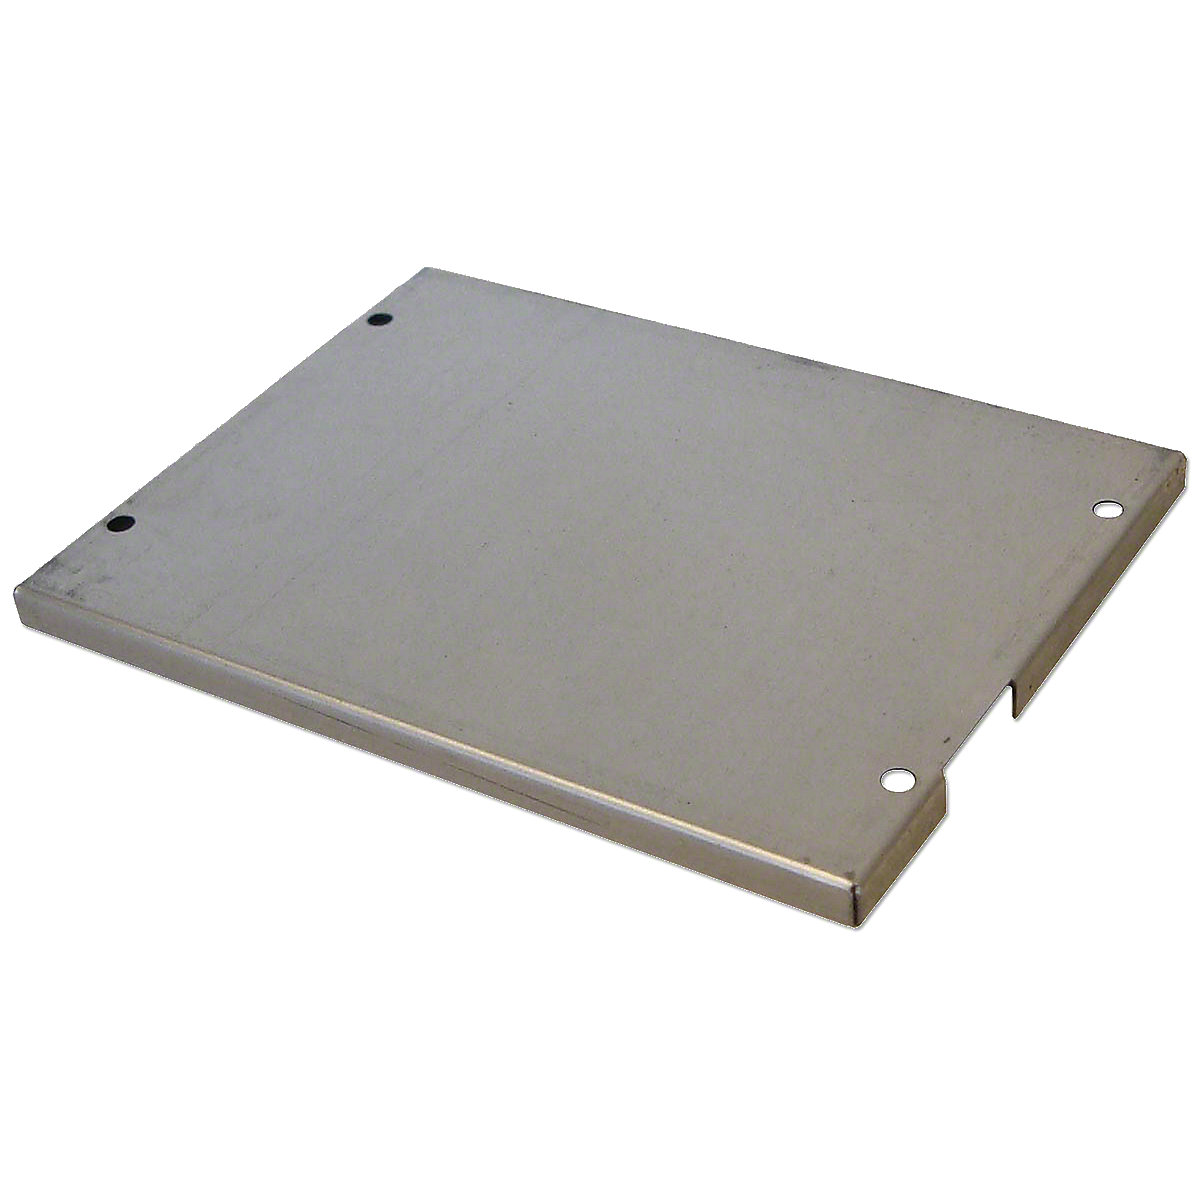 Battery Box Lid For Allis Chalmers: B, C, CA, D10, D12, G, WD, WD45 Gas